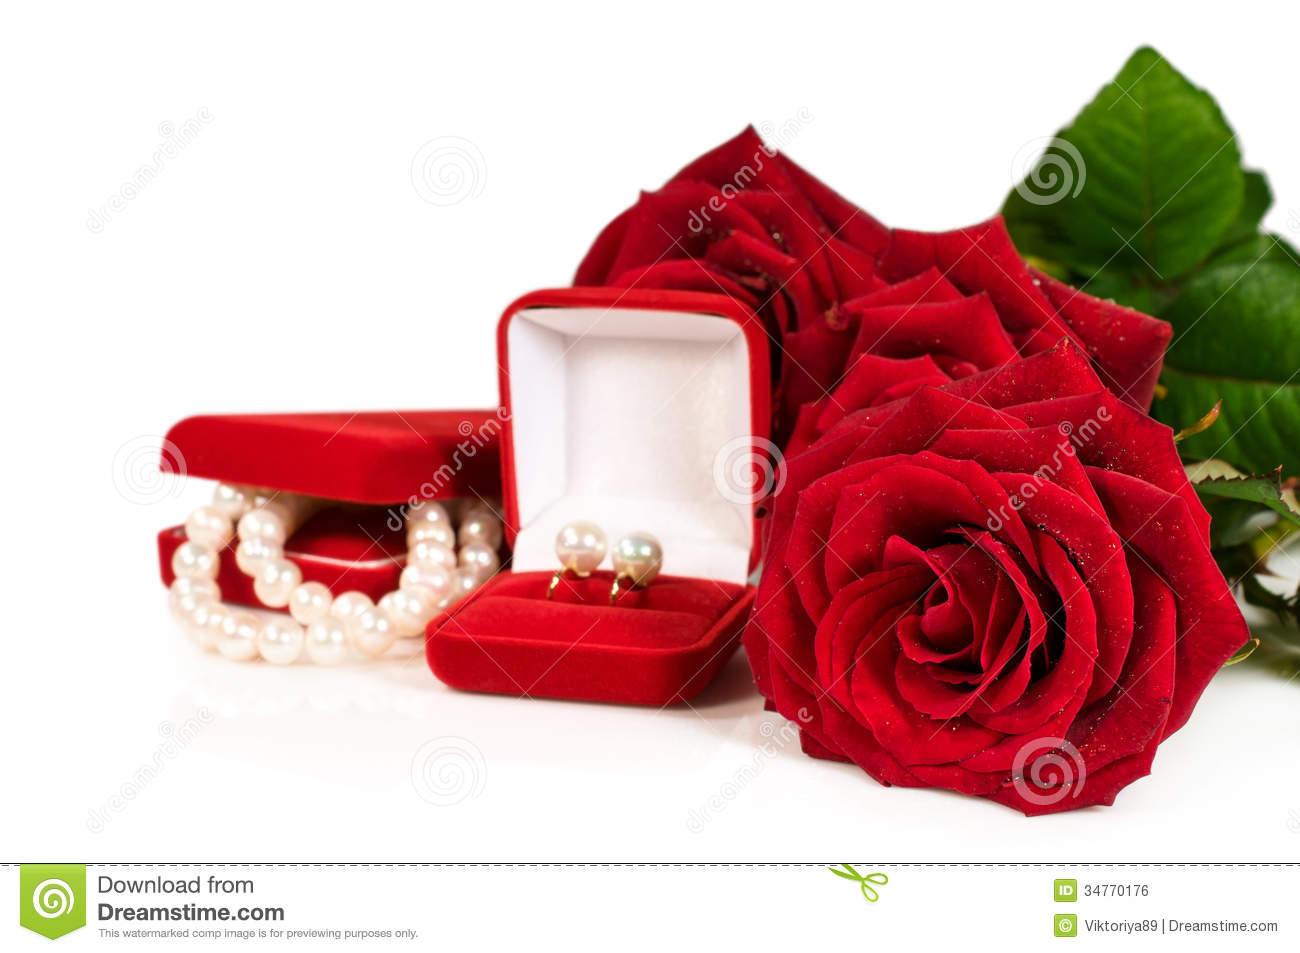 Pearl Necklace And Earrings In A Red Gift Box With A Roses